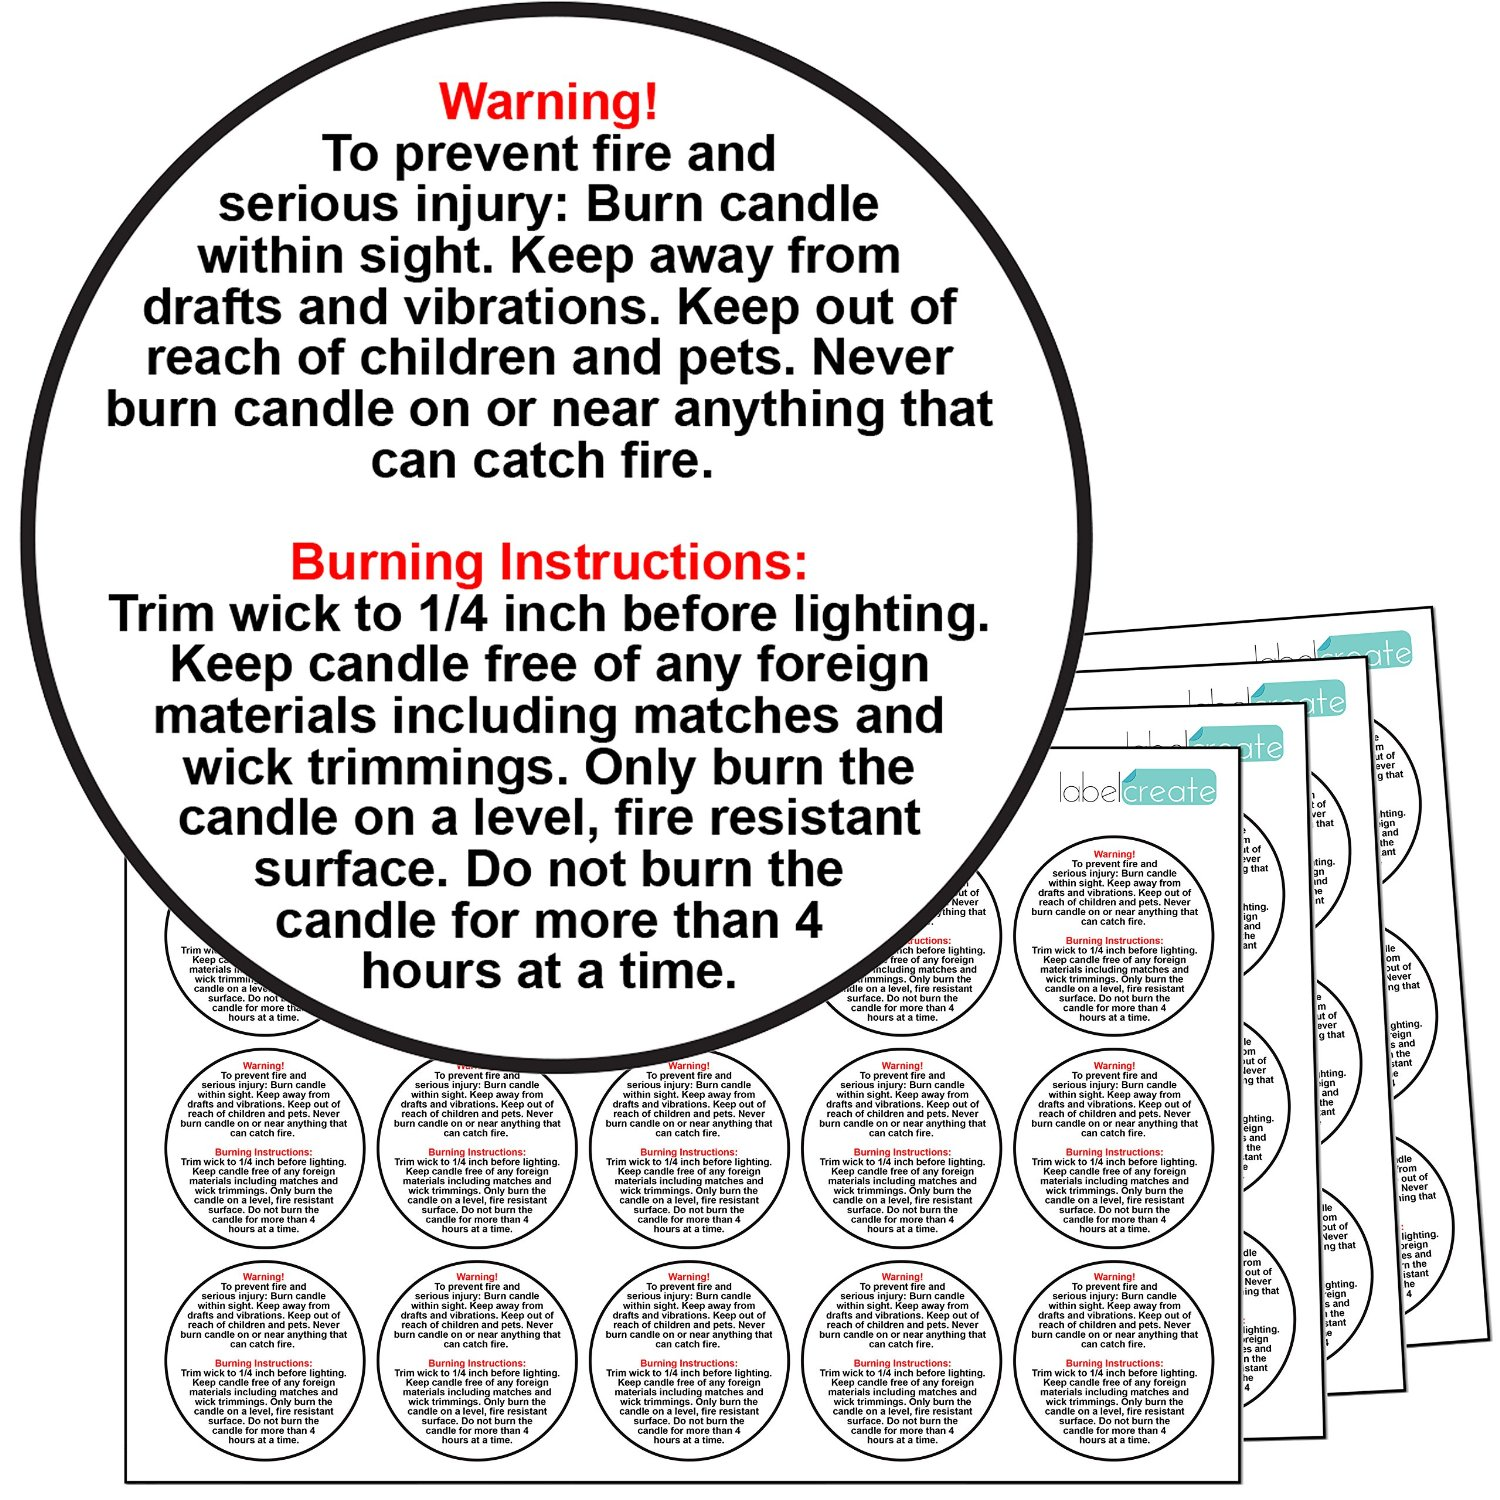 60x GLOSSY TRANSPARENT PLASTIC Candle Warning Labels